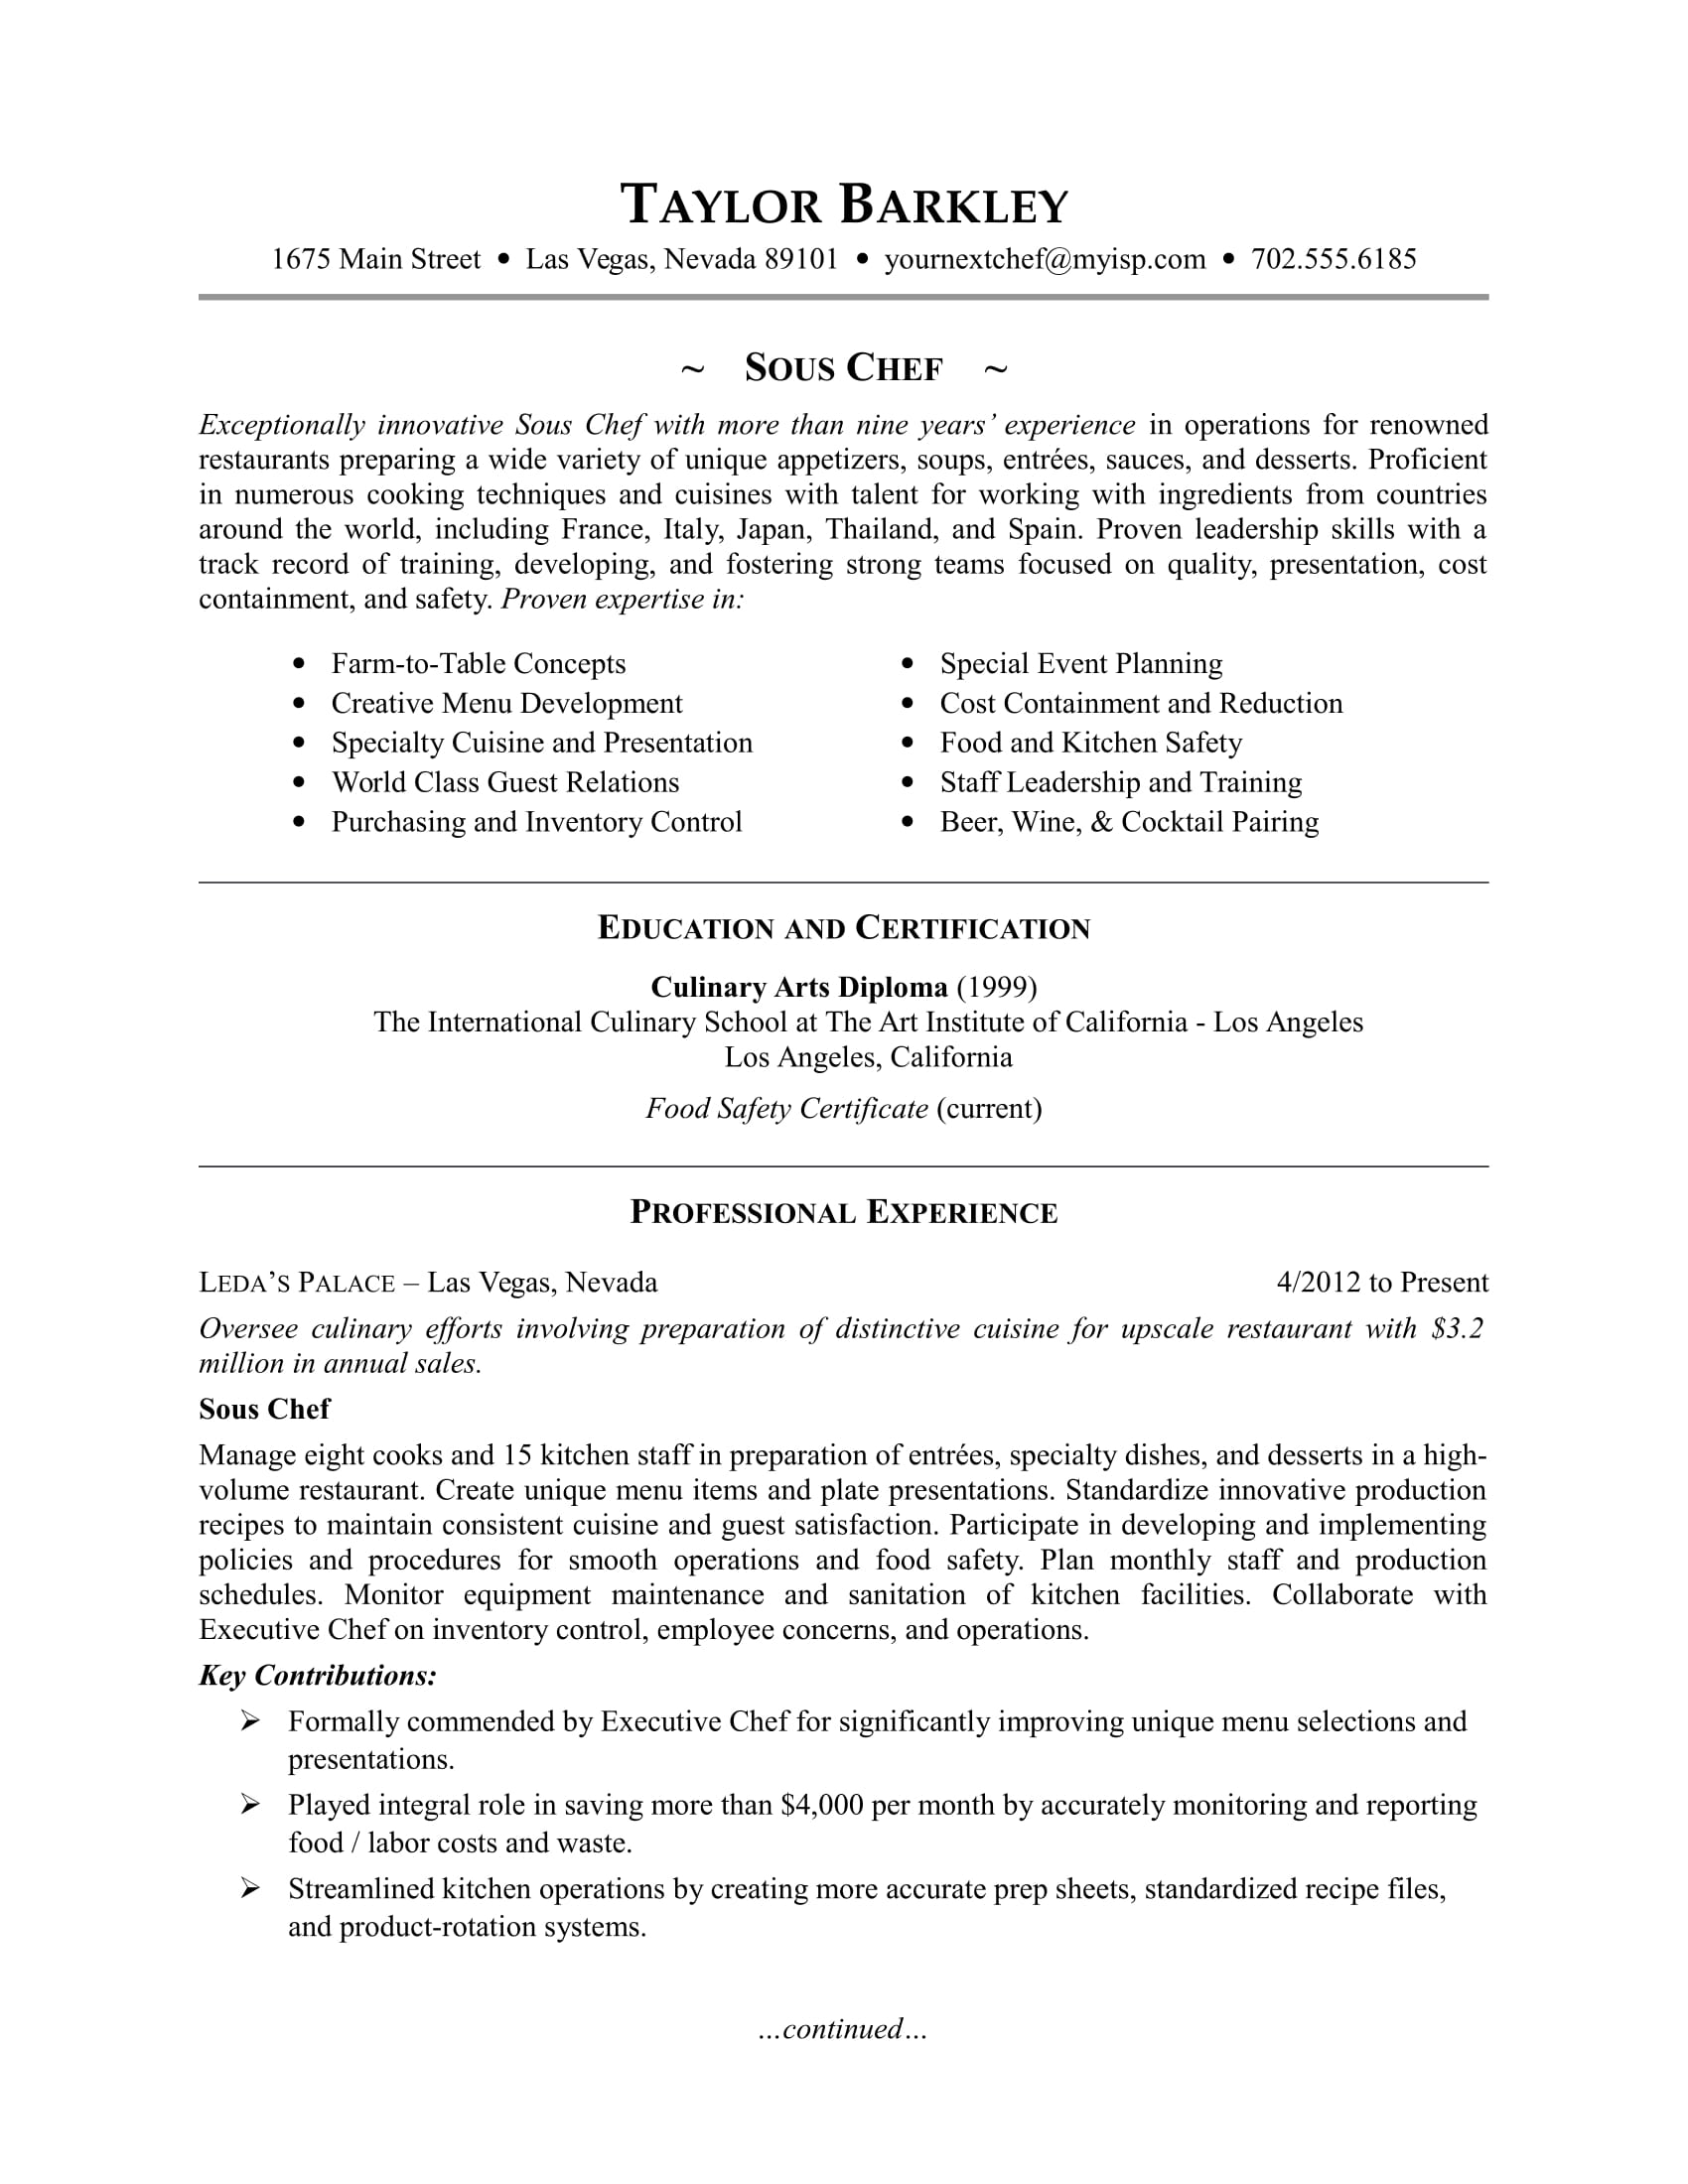 Professional Resume For A Chef